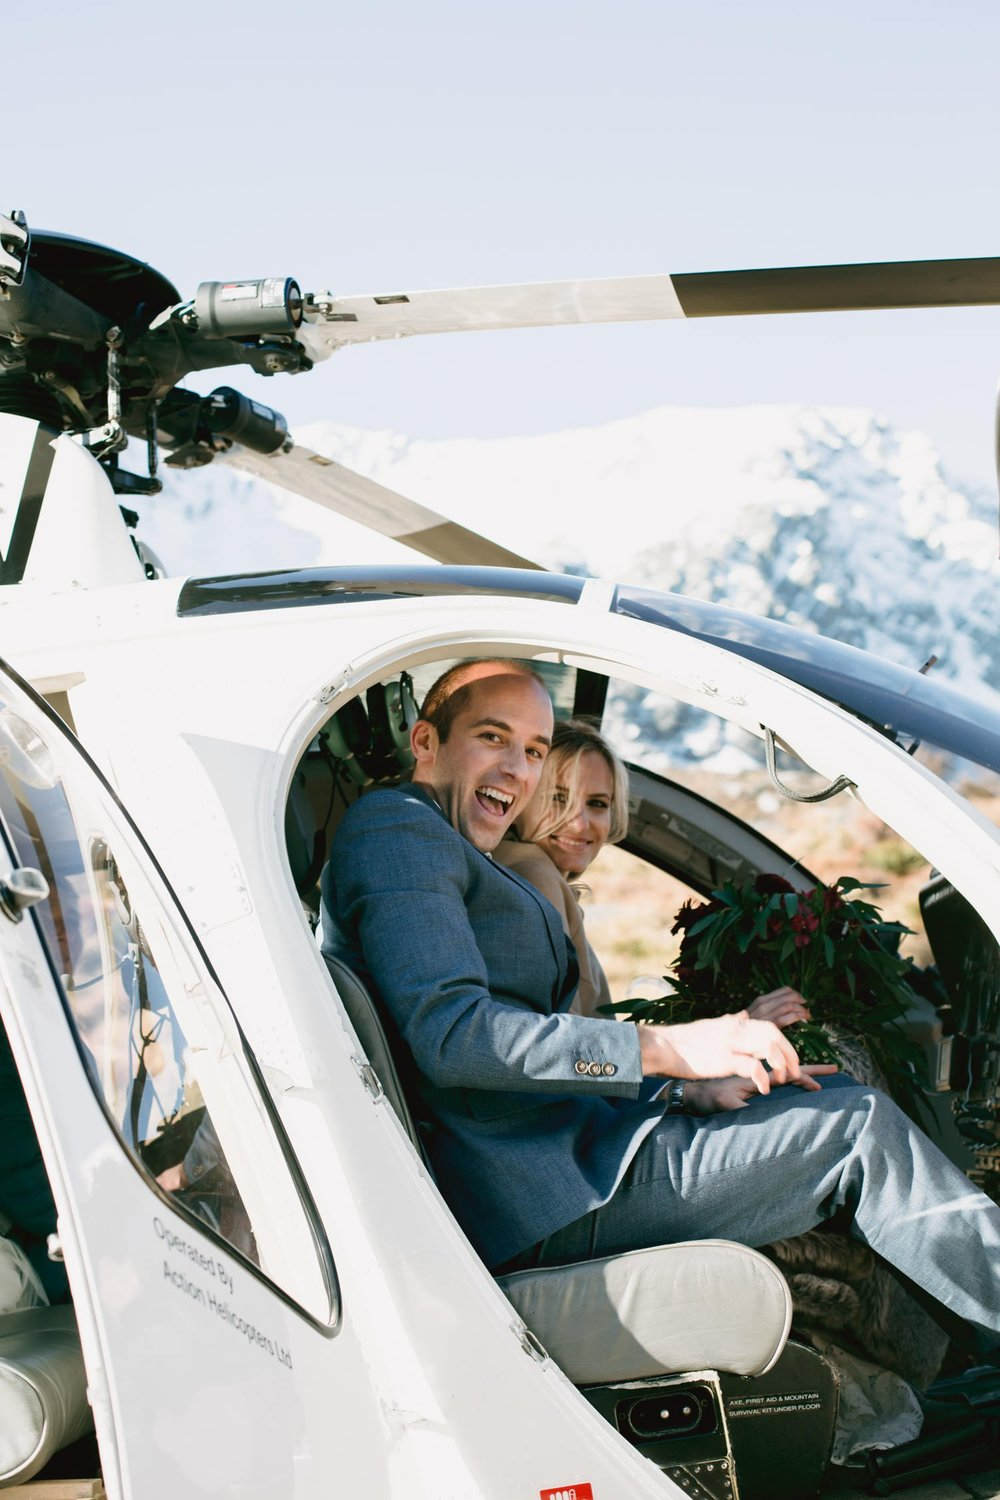 glenorchy_helicopter_elopement_dawn_thomson-35_WEB.jpg